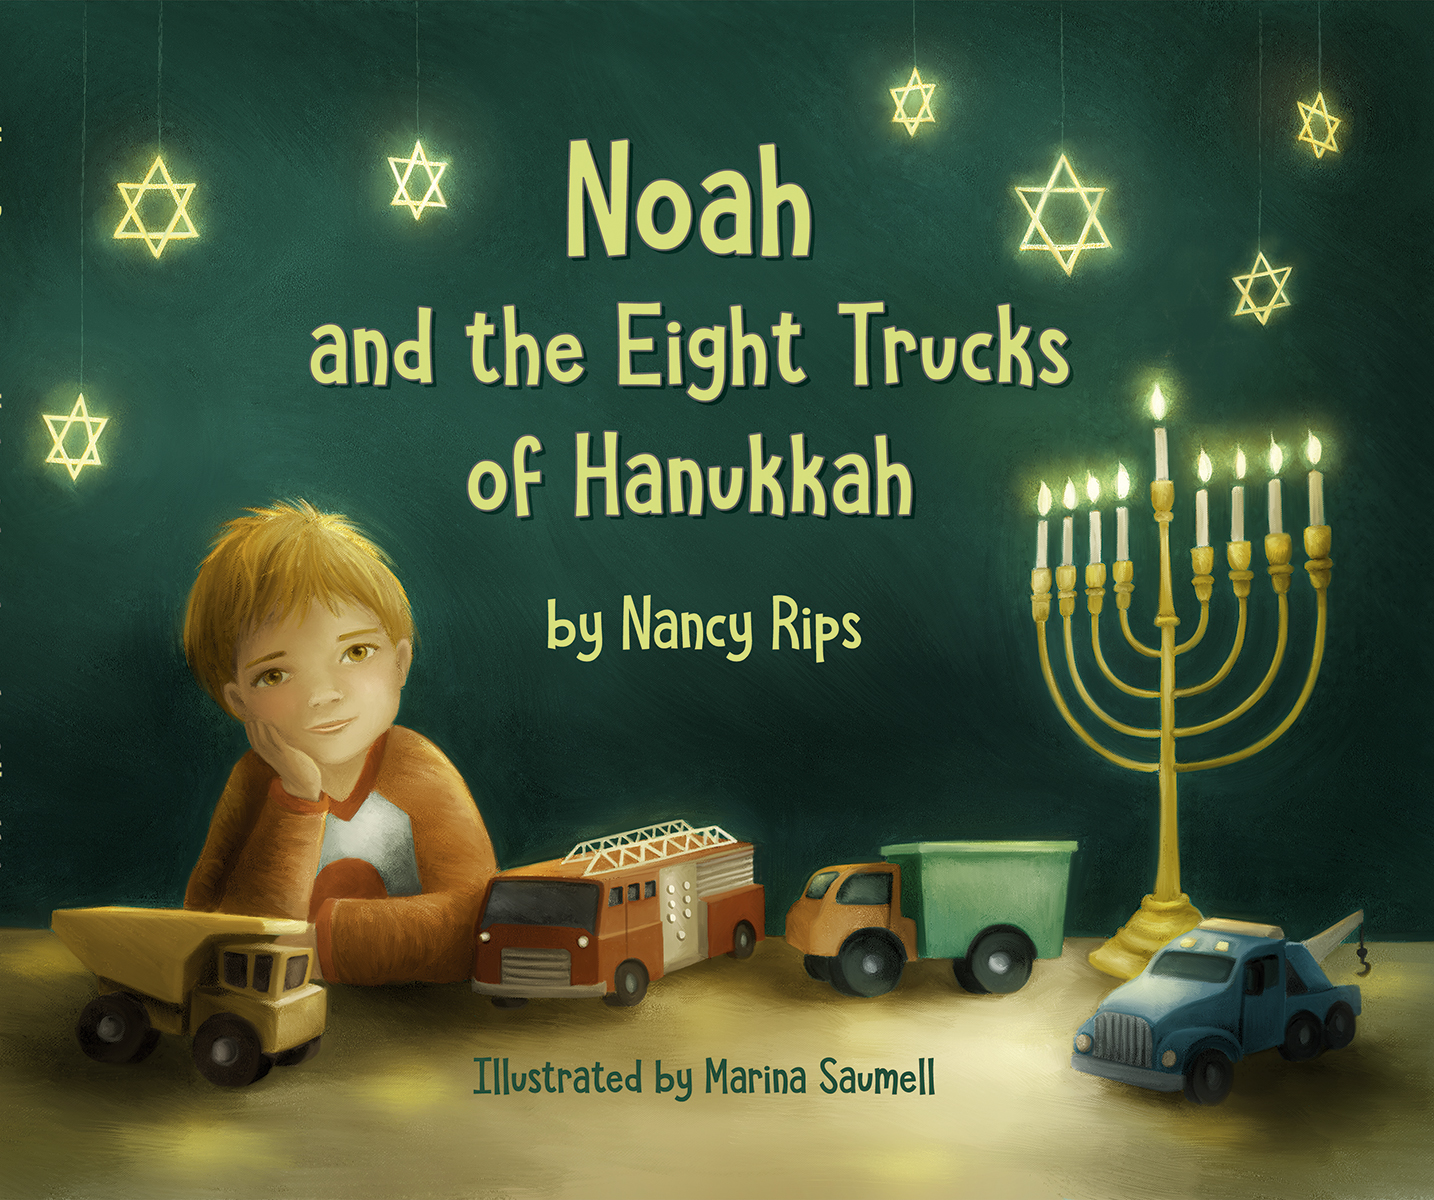 Noah and the Eight Trucks of Hanukkah